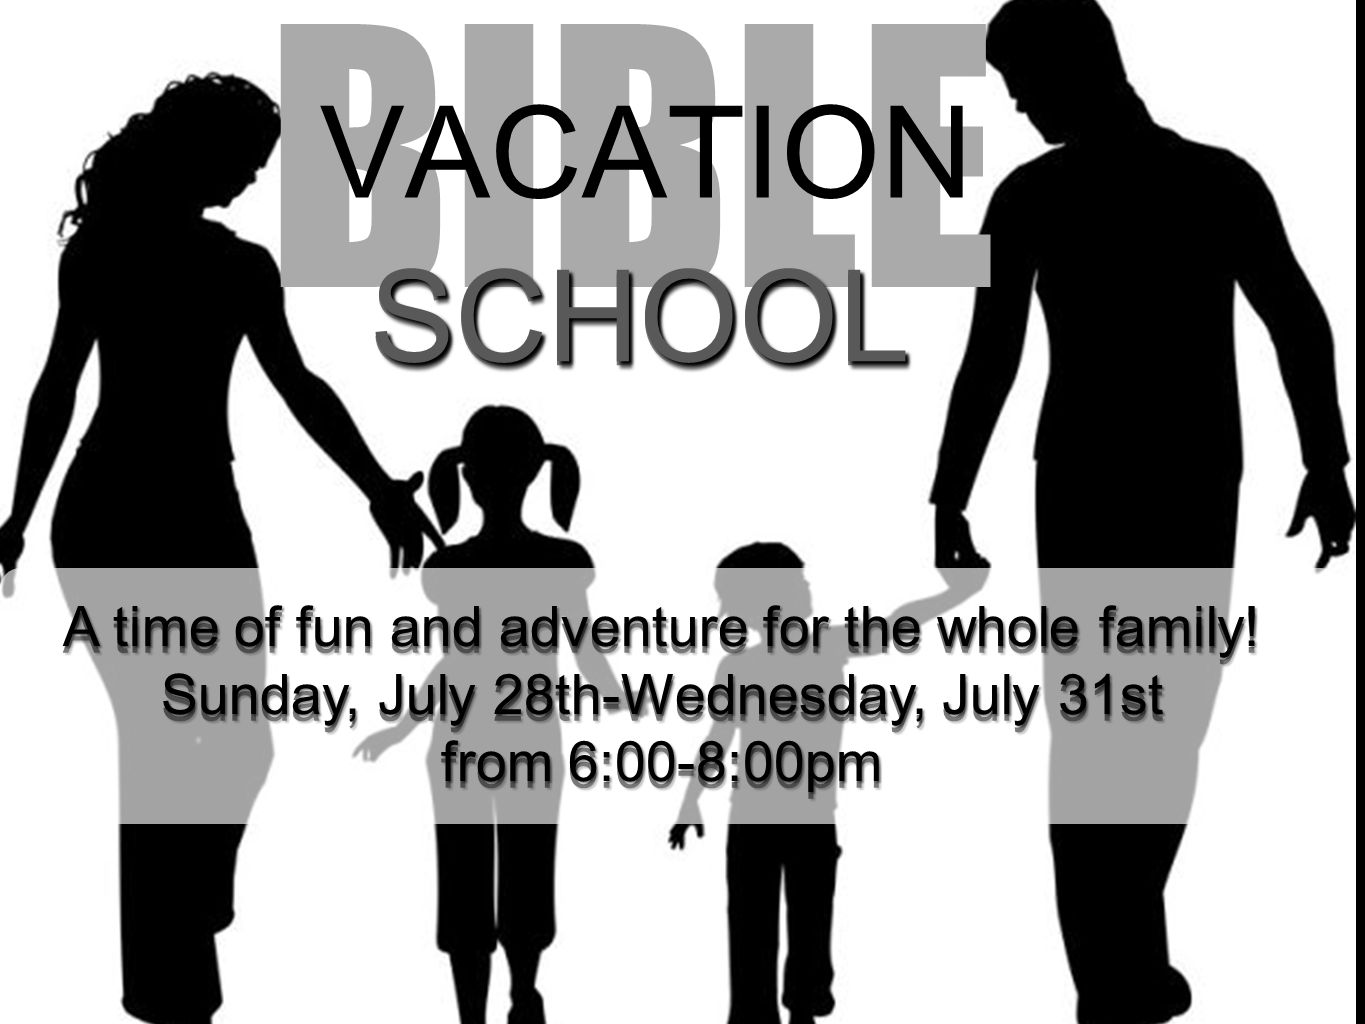 BIBLE VACATION A time of fun and adventure for the whole family! Sunday, July 28th-Wednesday, July 31st from 6:00-8:00pm A time of fun and adventure f